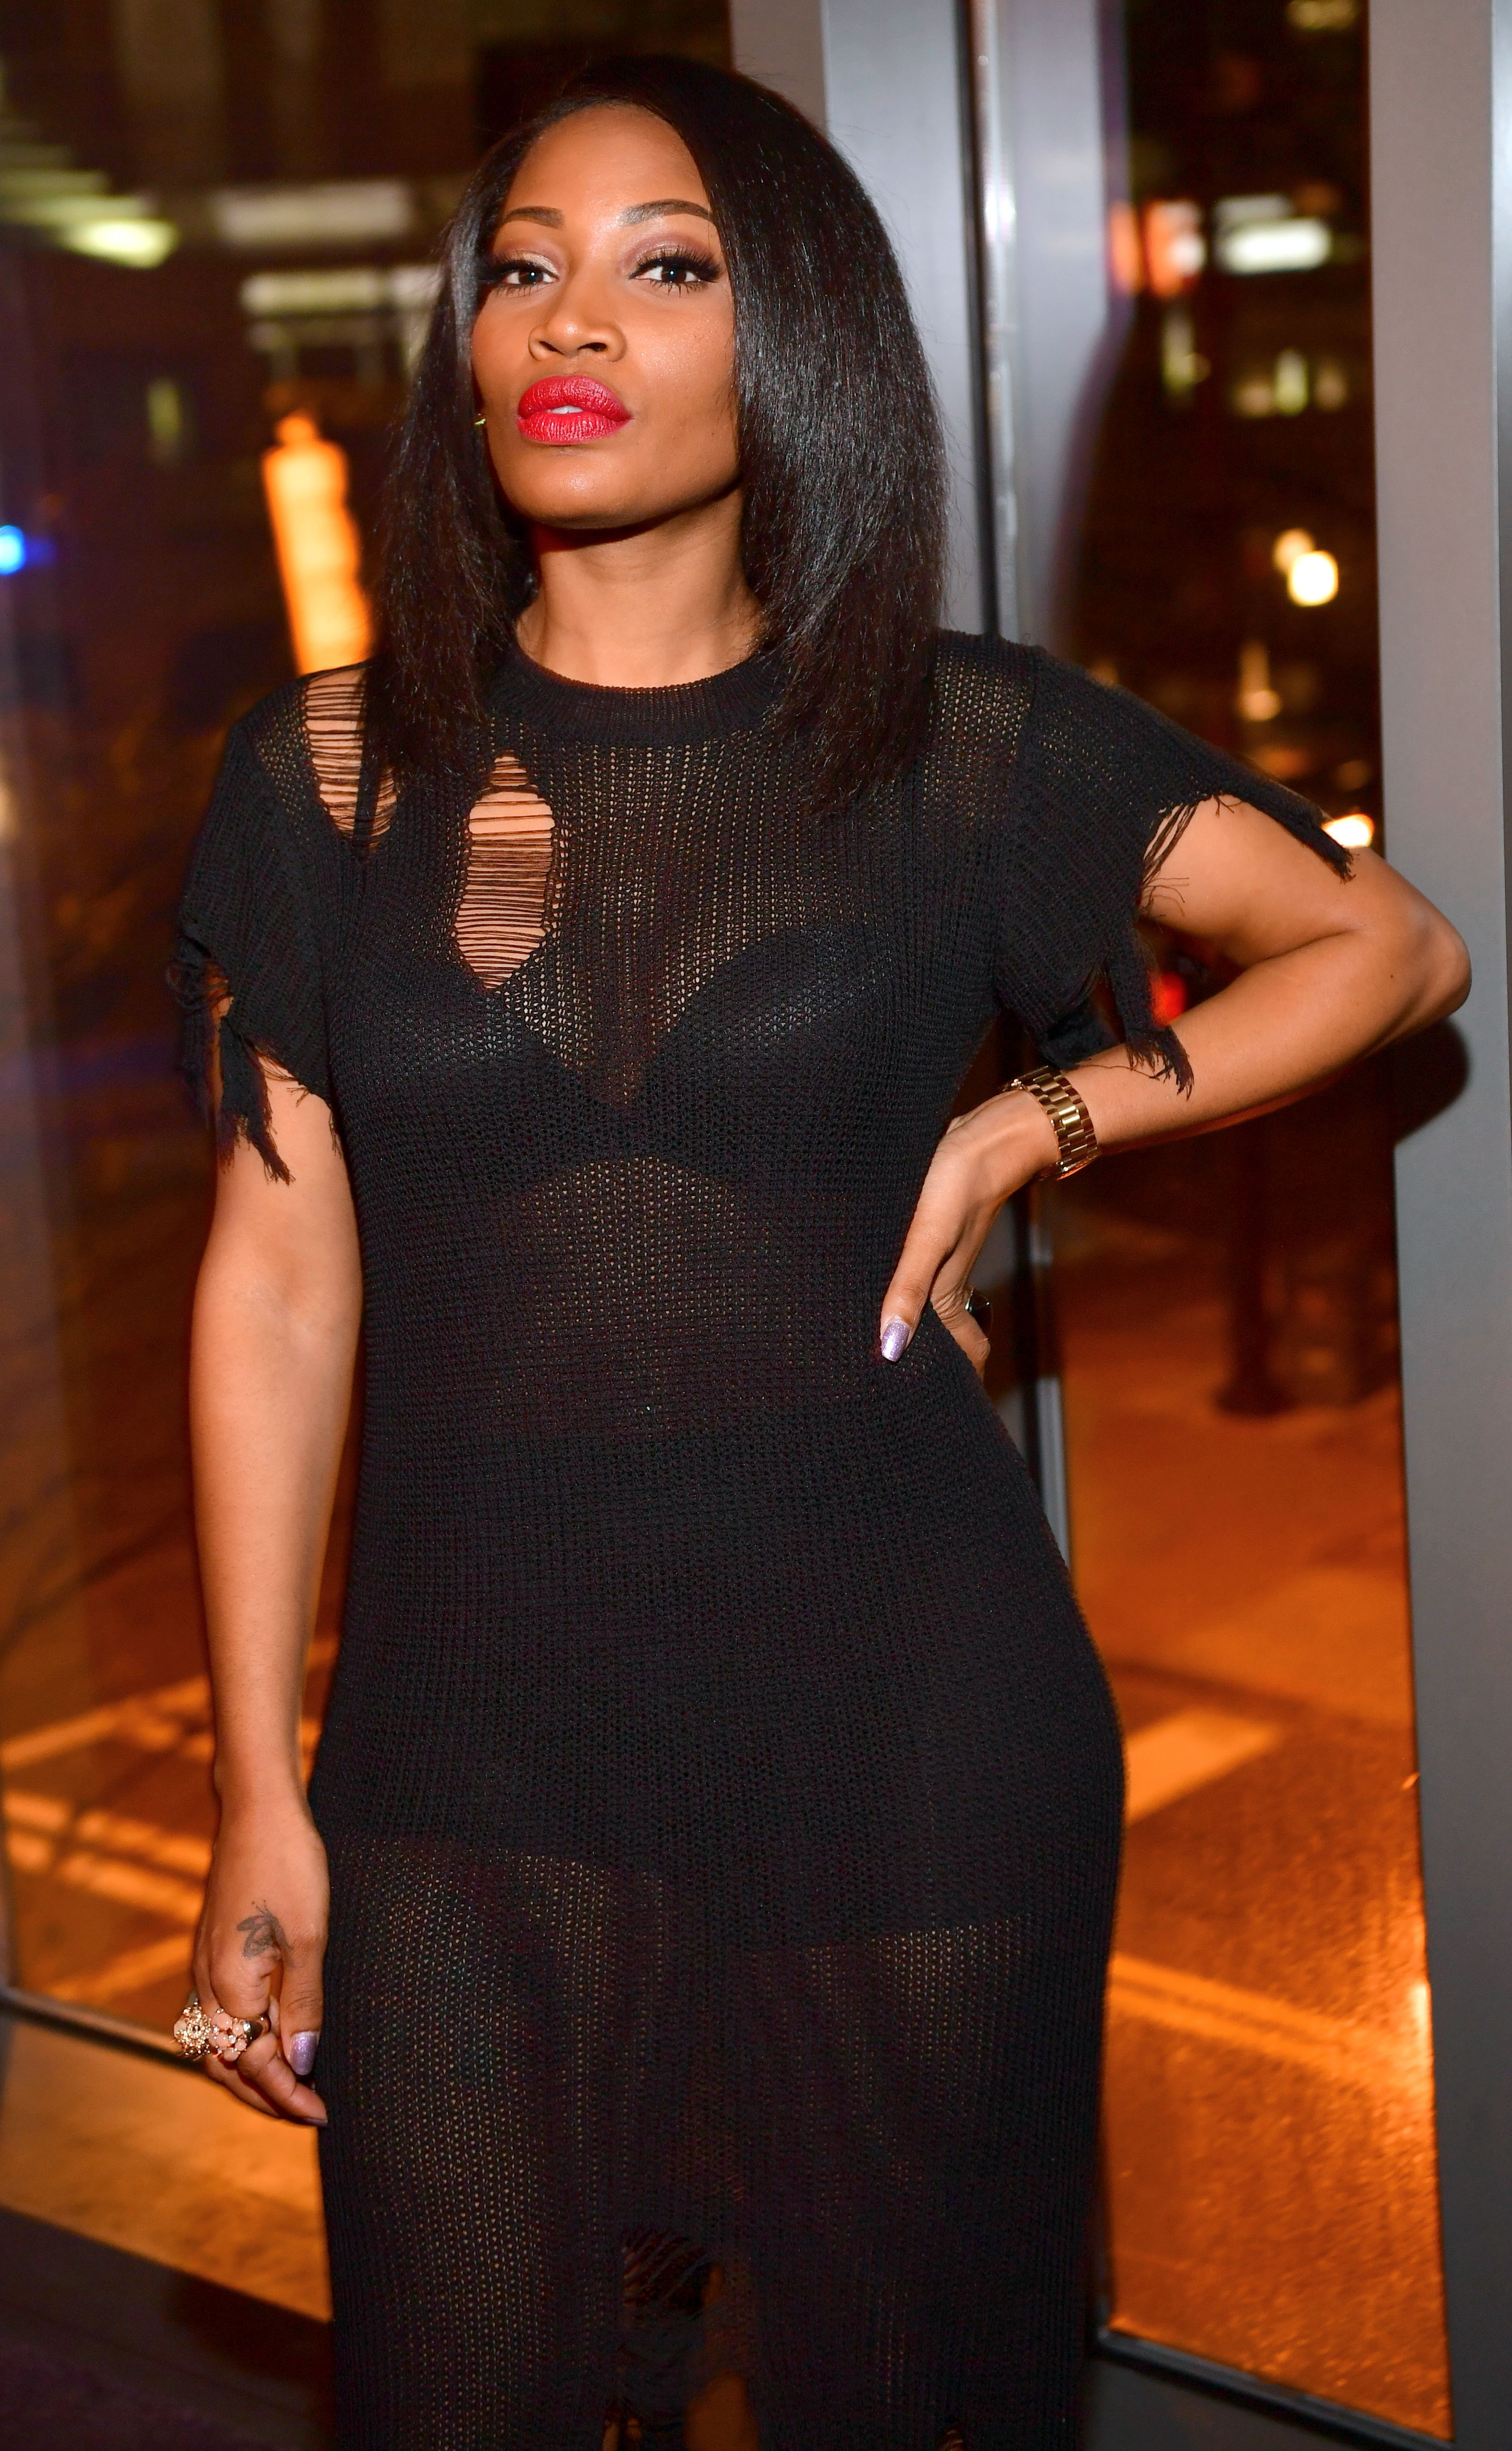 Erica Dixon attends a party at the Gold Room on January 19, 2017 | Photo: Getty Images